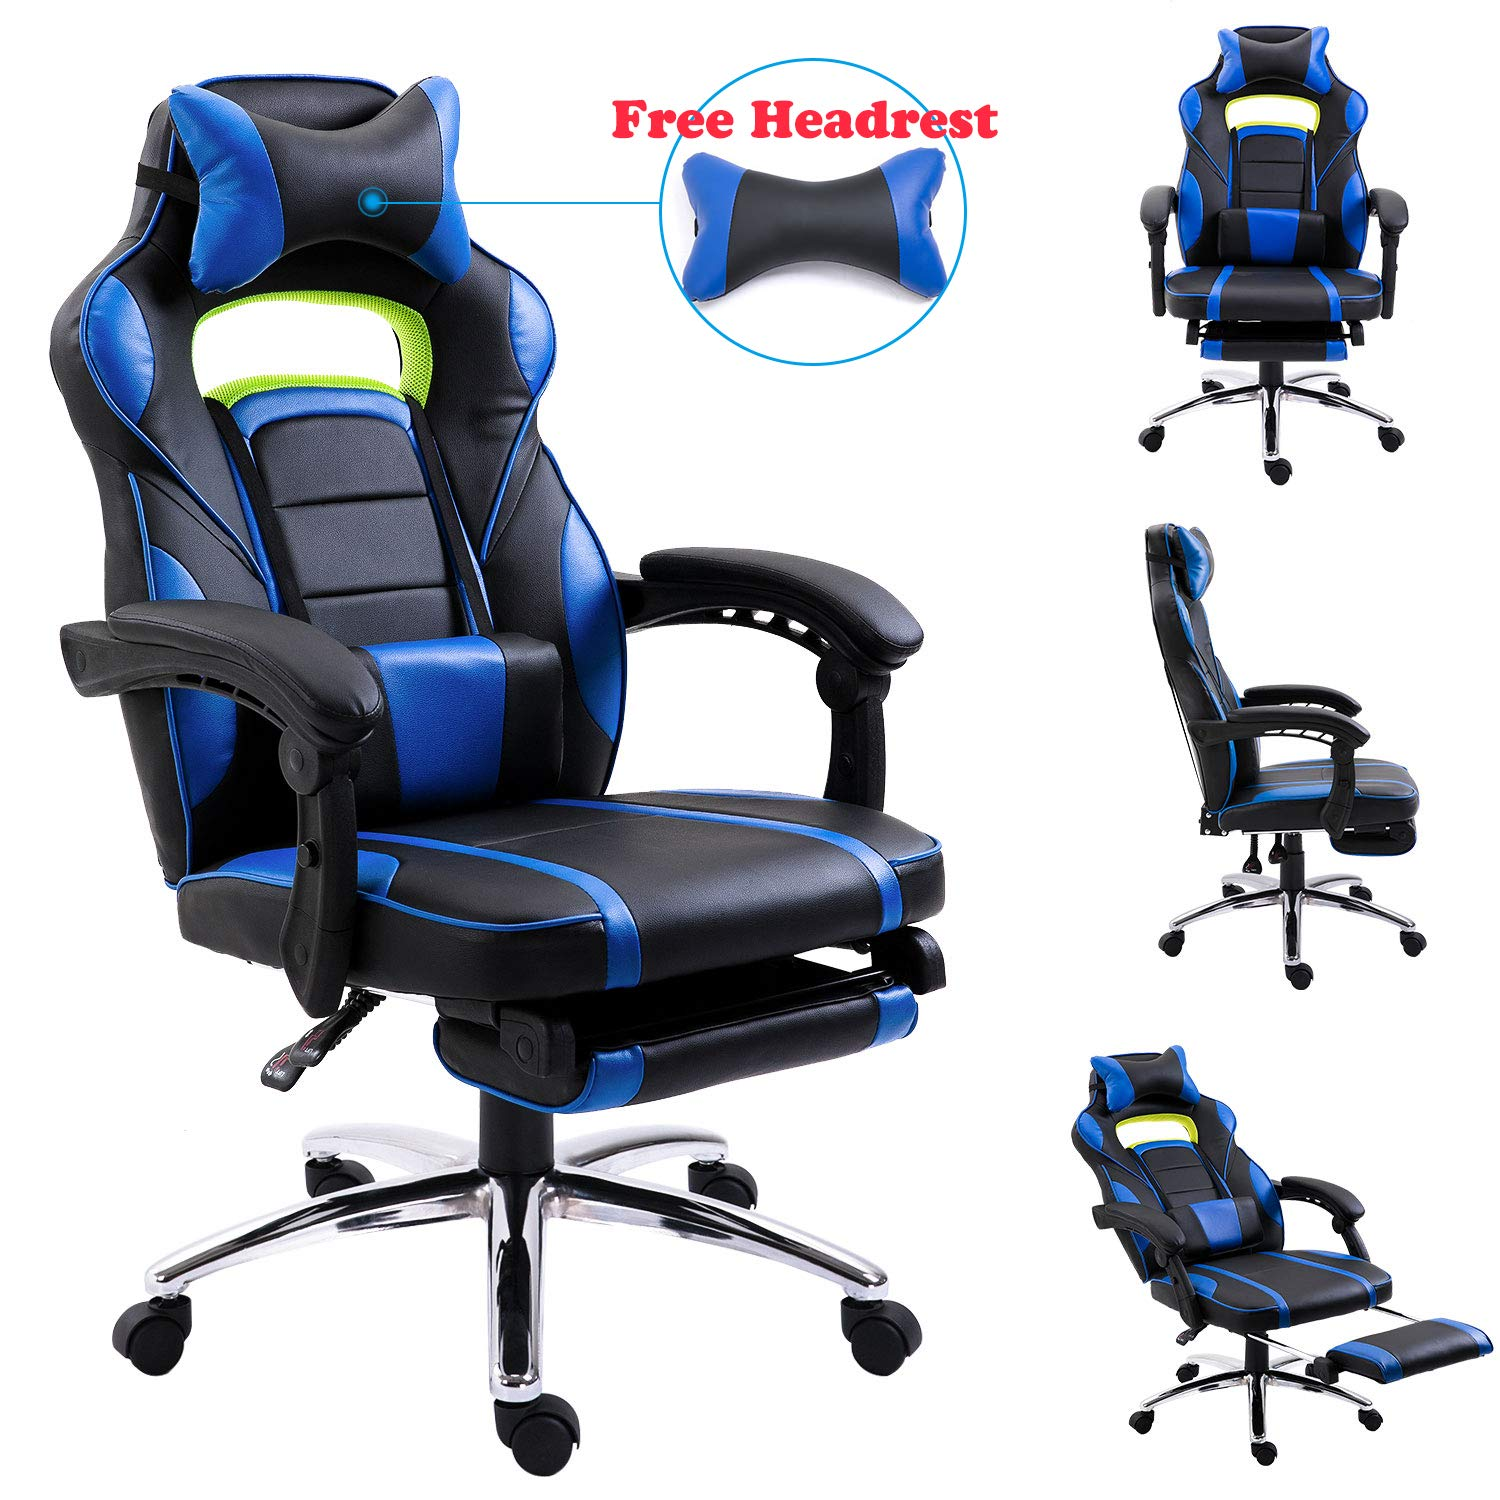 EUCO Gaming Chair,Racing Style Reclining Computer Chair with Retractible  Footrest Comfy Executive Office Chair High Back PC Chair Swivel Desk Chair